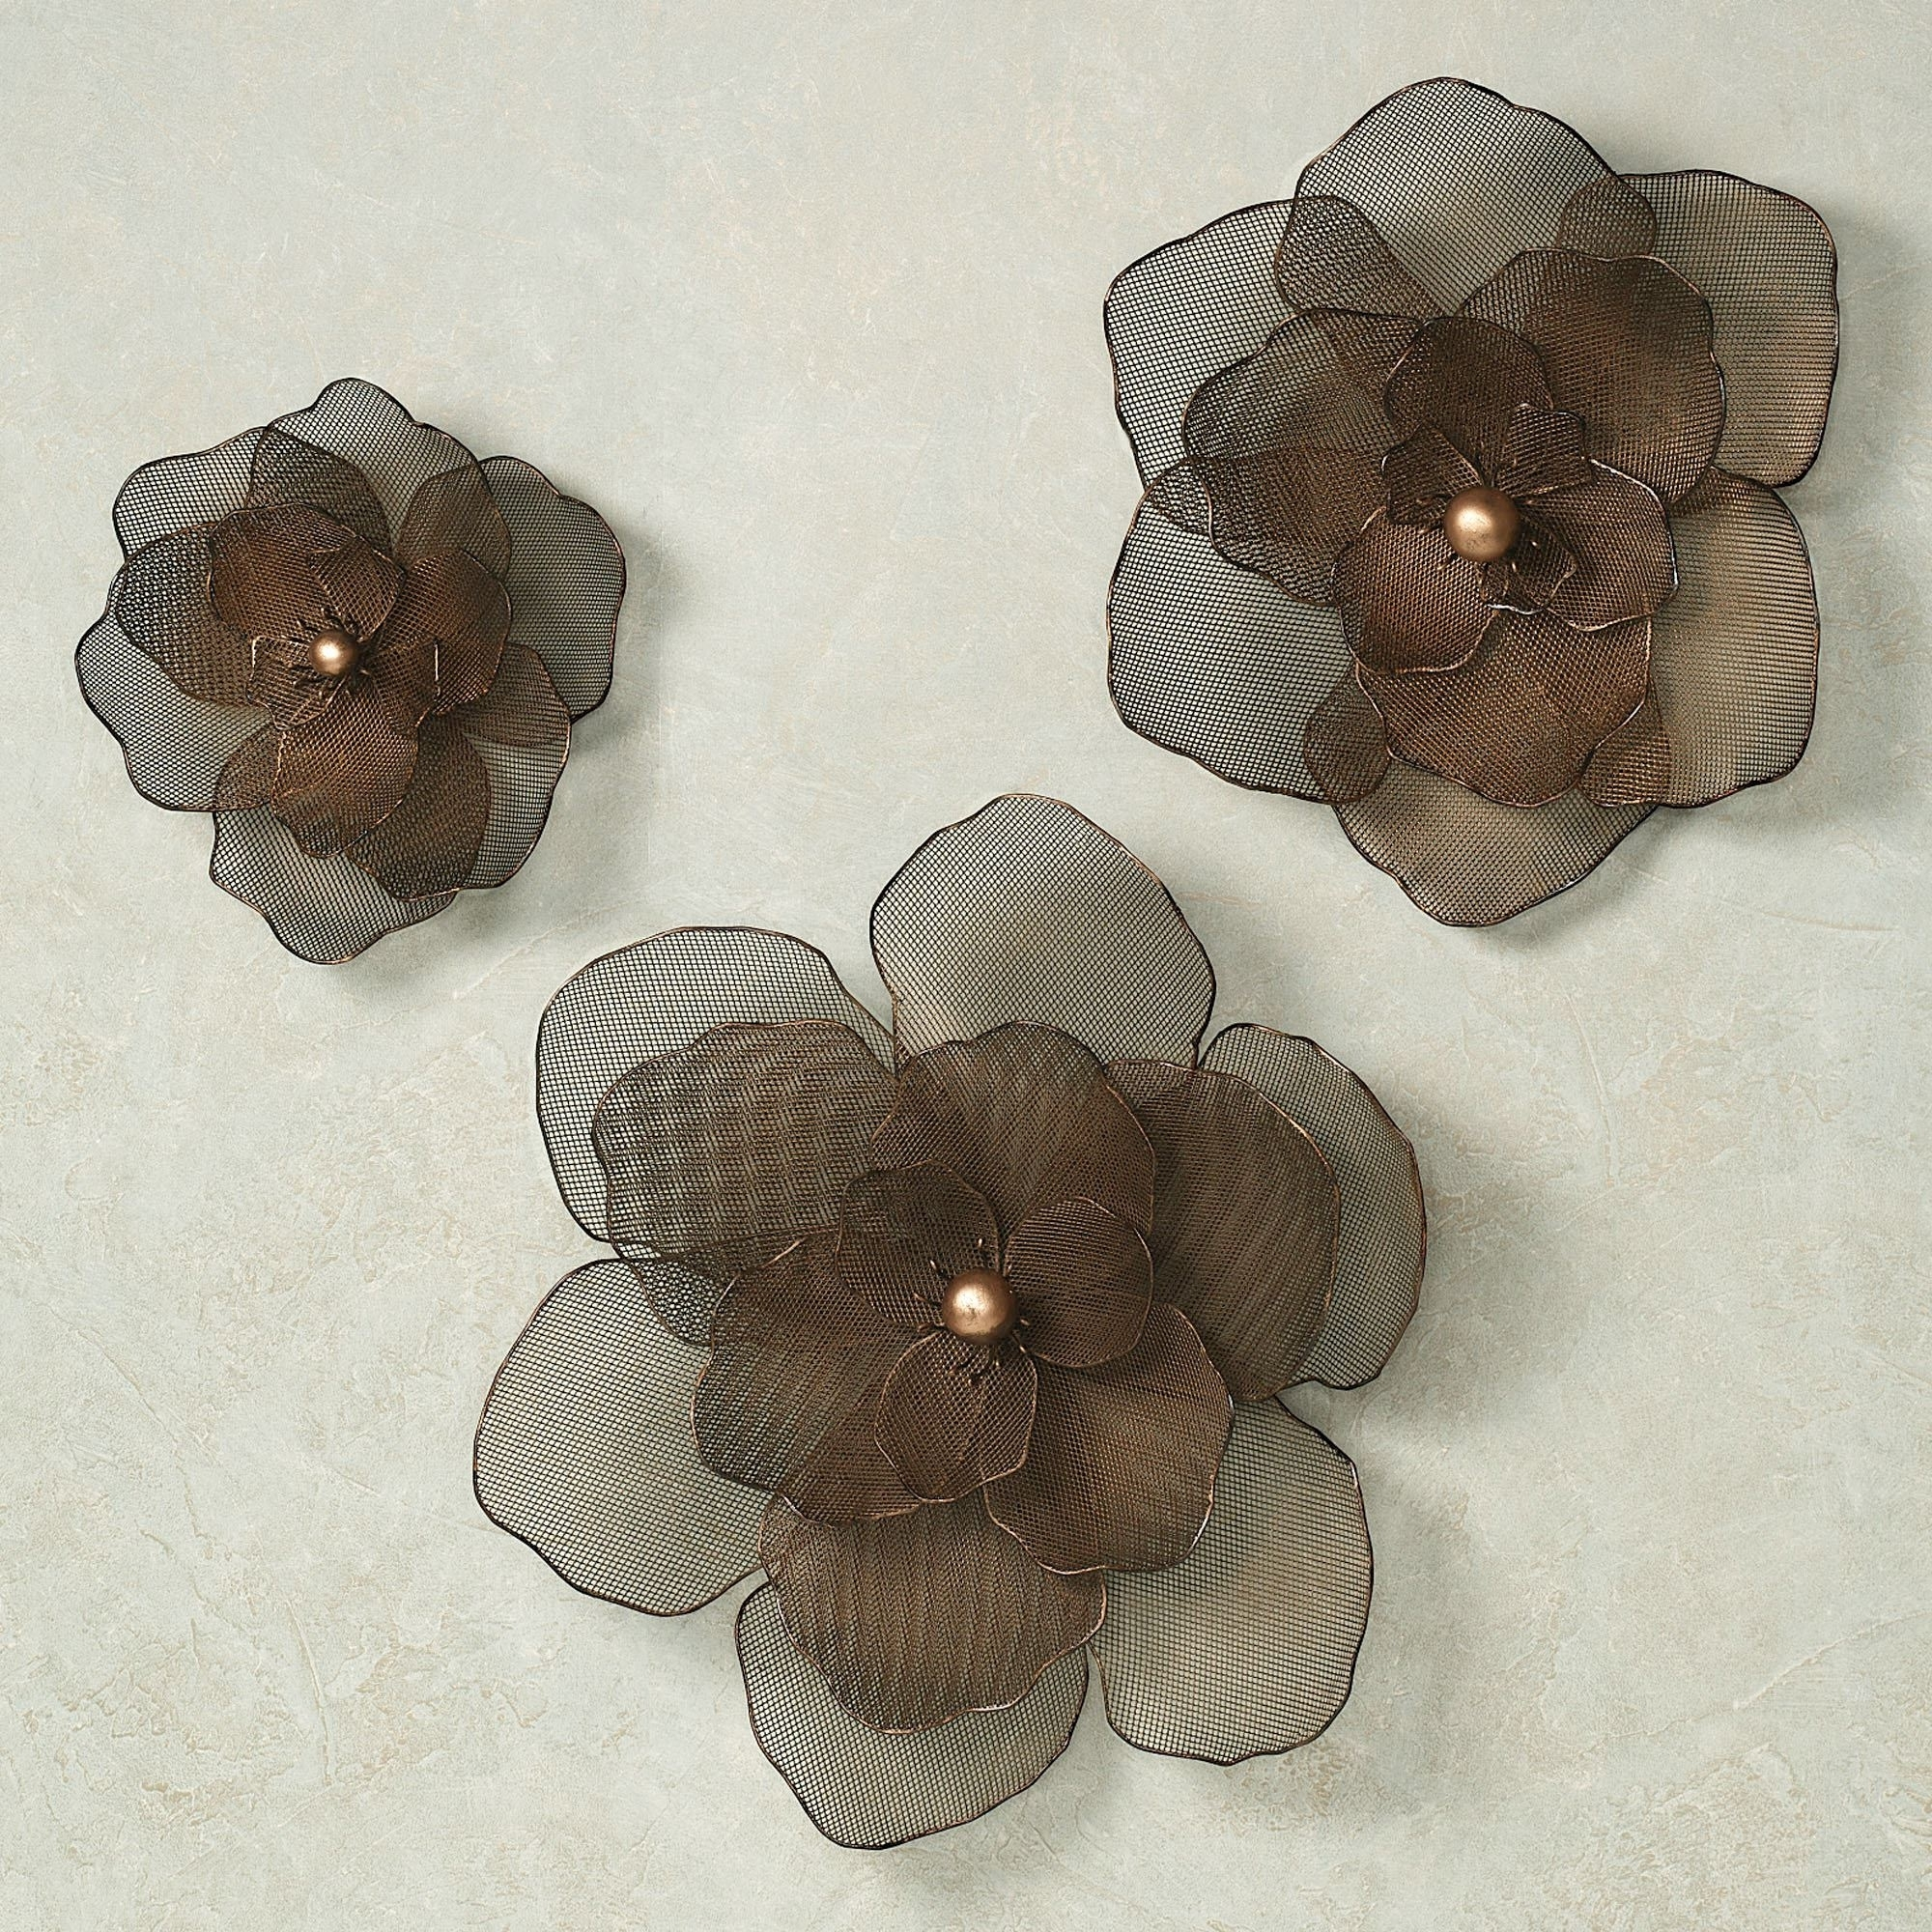 Metal Flowers Wall Art With Widely Used Amazing Metal Flower Wall Art 6 Cq6129 1 Jpg Resizeid 4 Resizeh  (View 10 of 15)